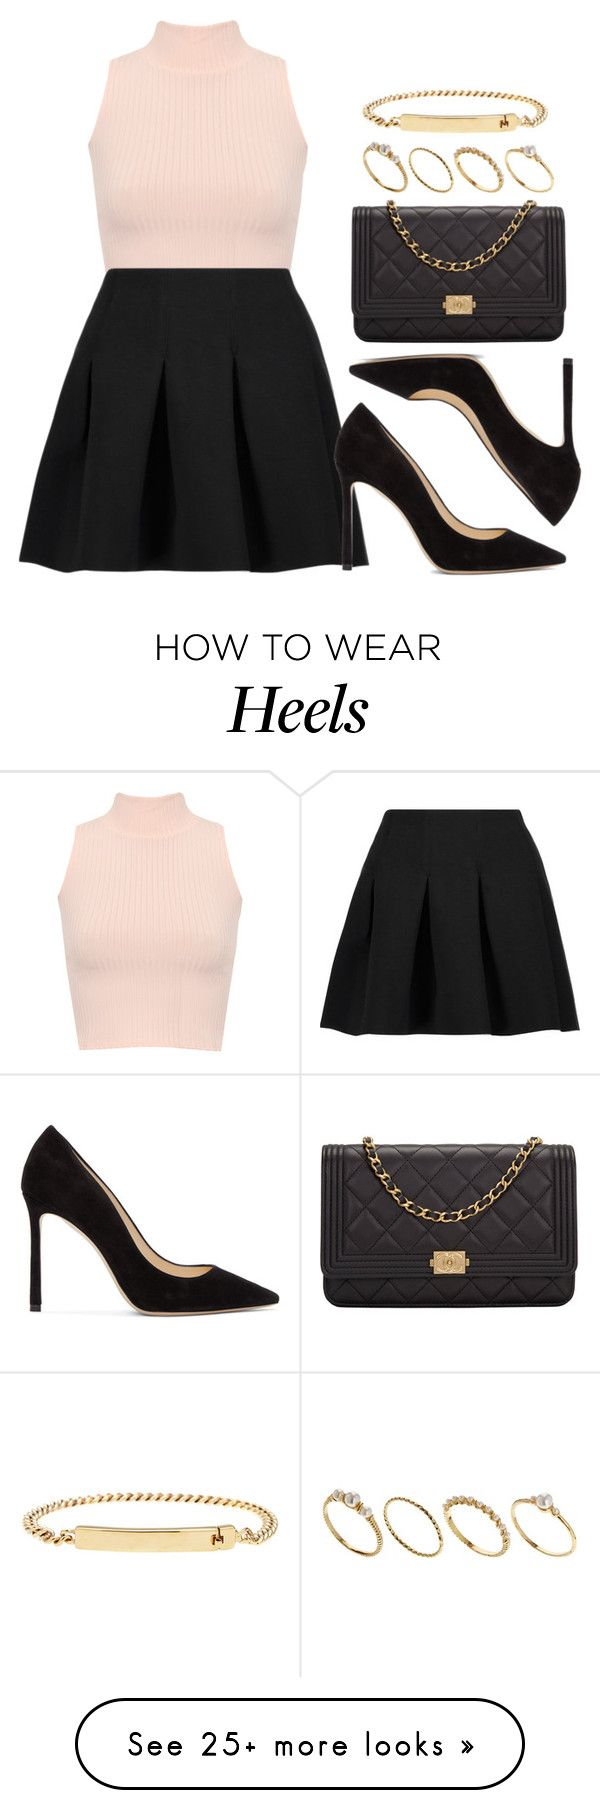 """""""Sin título #11893"""" by vany-alvarado on Polyvore featuring WearAll, T By Alexander Wang, Jimmy Choo, Chanel, ASOS and A.P.C."""